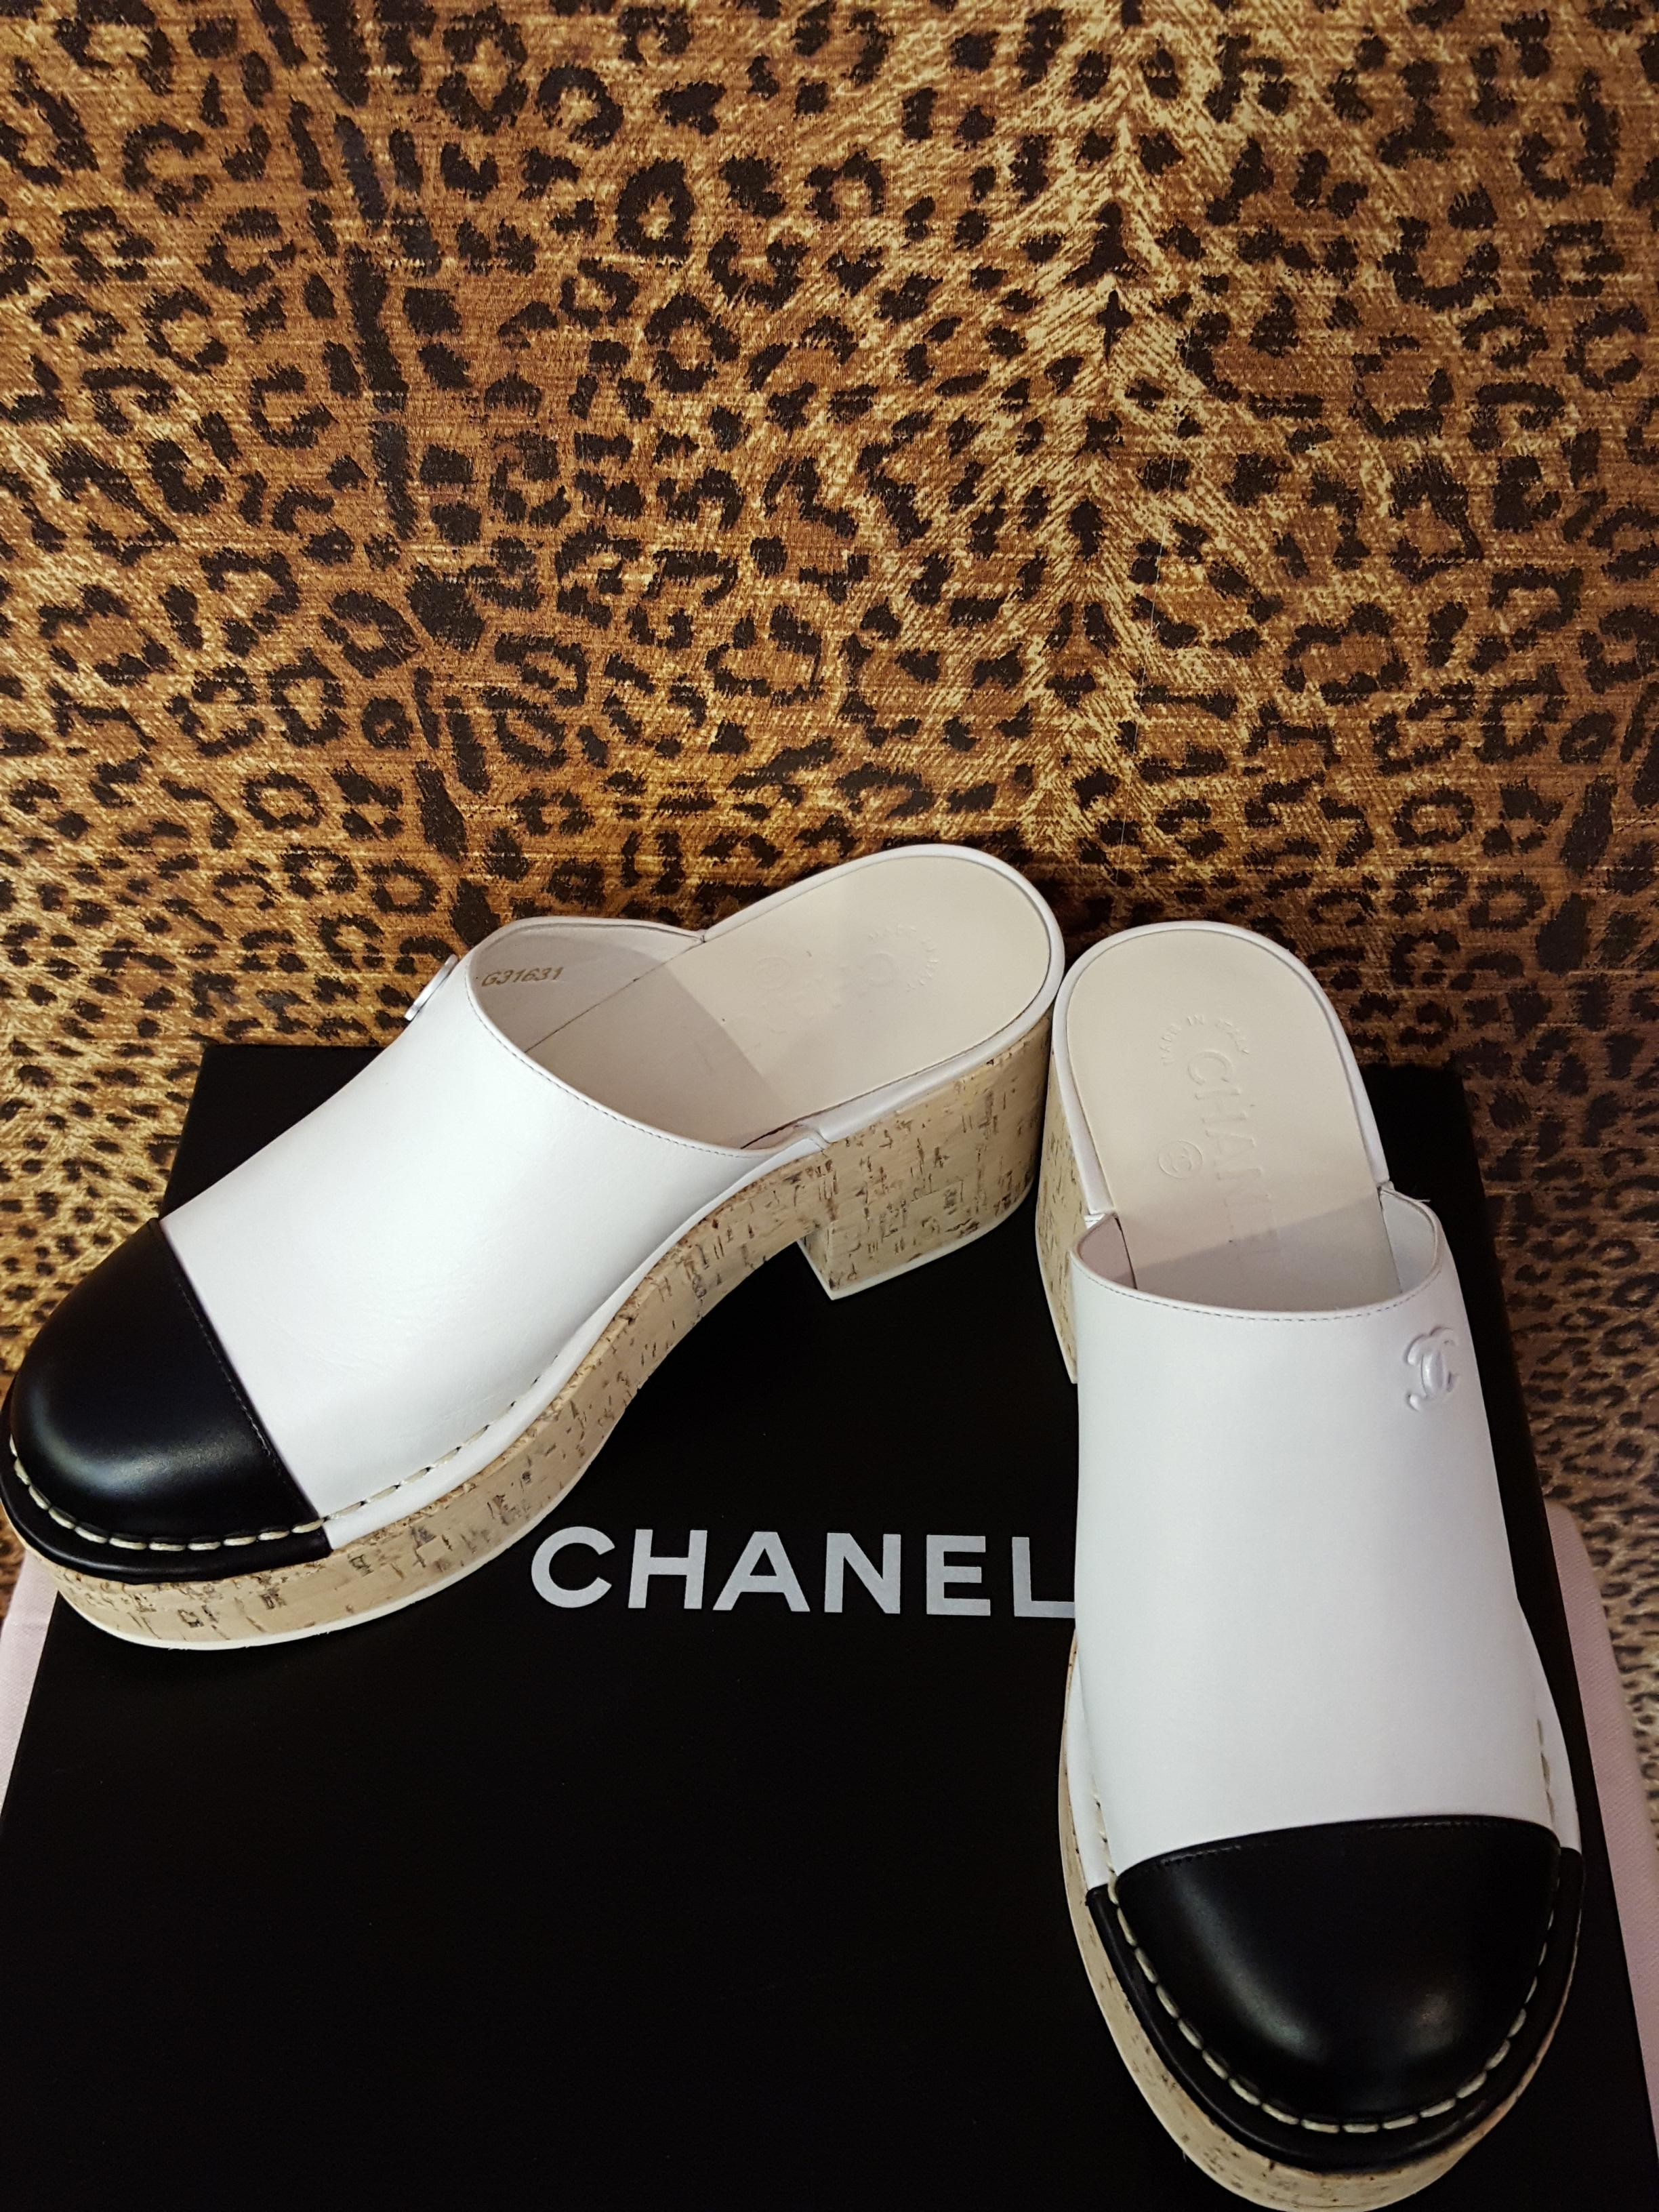 Chanel~ Black & White, Leather, Mules, Shoes Price: $713.99